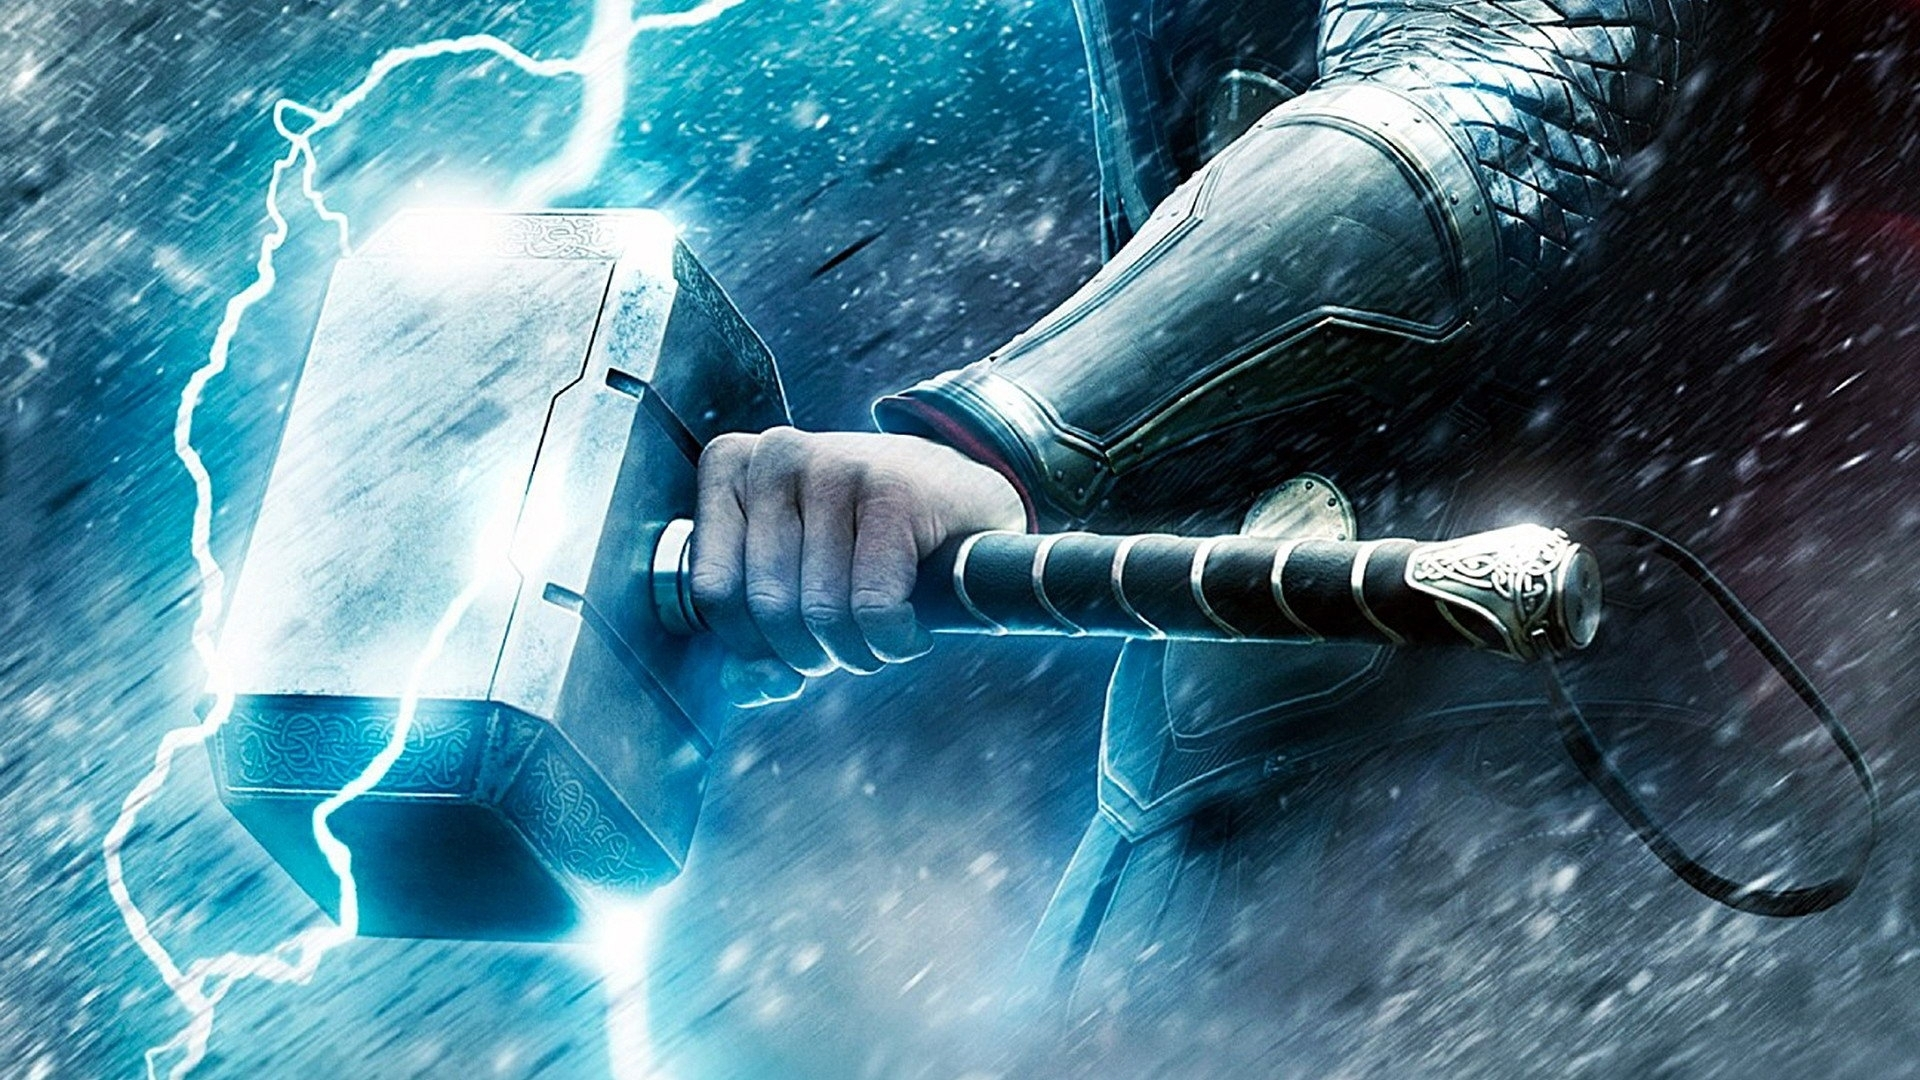 45+ hd thor wallpapers | download free | bsnscb gallery